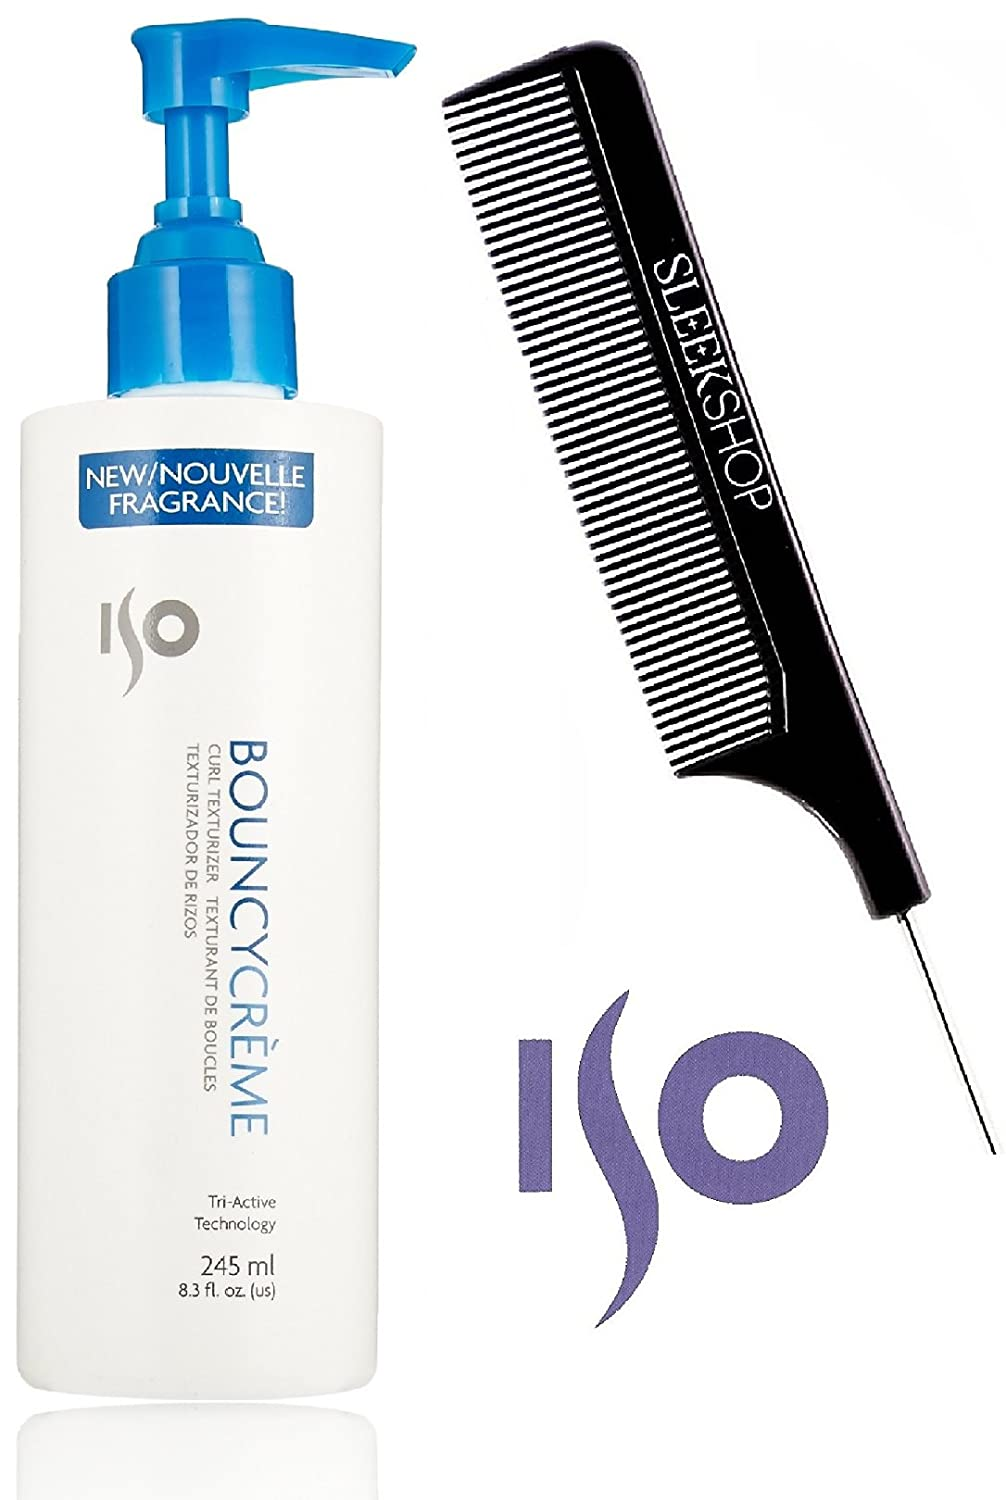 ISO Bouncy Creme CURL TEXTURIZER Curling Cream (with Sleek Steel Pin Tail Comb) (8.5 oz / 250 ml - with PUMP) Bouncy Cream by ISO